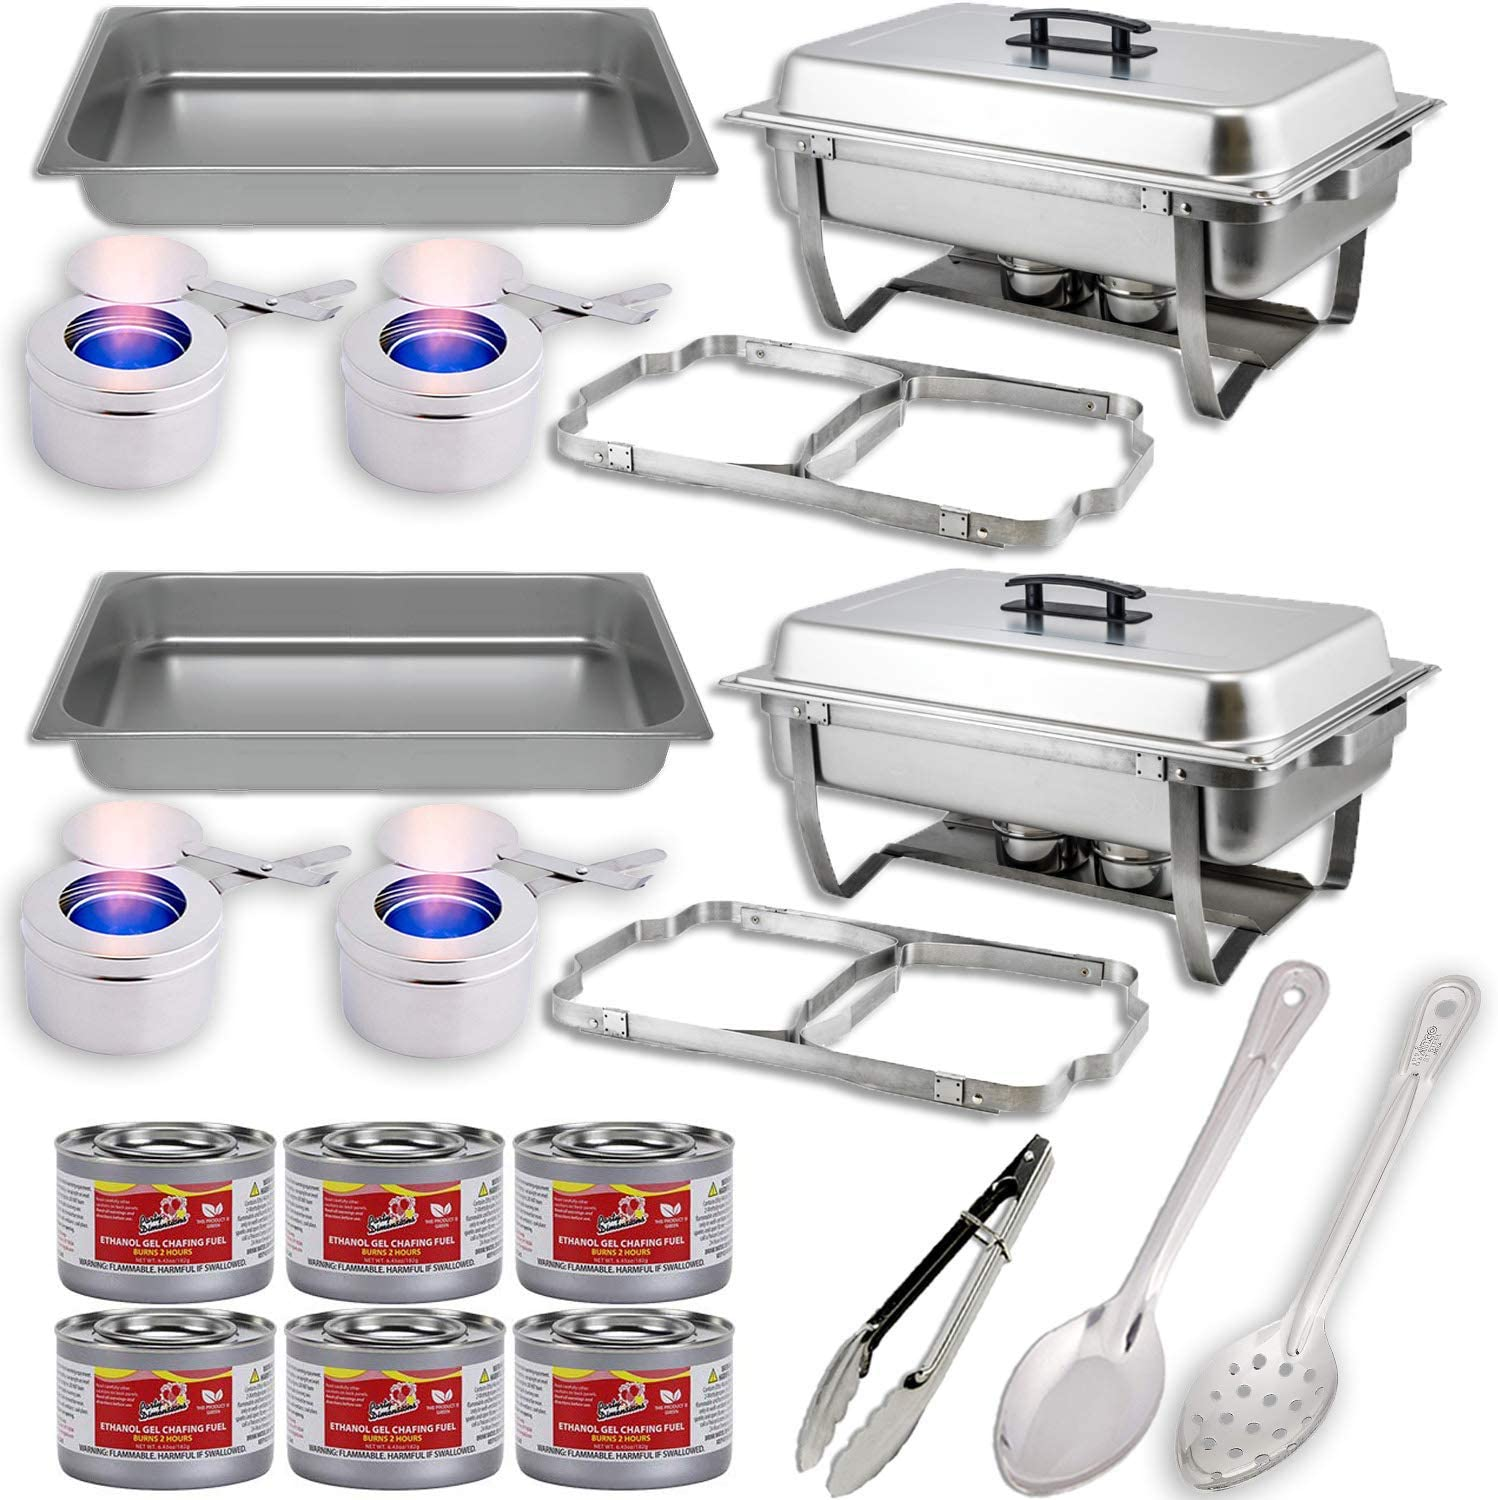 Chafing Dish Buffet Set w/Fuel — Folding Frame + Water Pan + Food Pan (8 qt) + 4 Fuel Holders + 6 Fuel Cans + 3 Serving Utensils (15